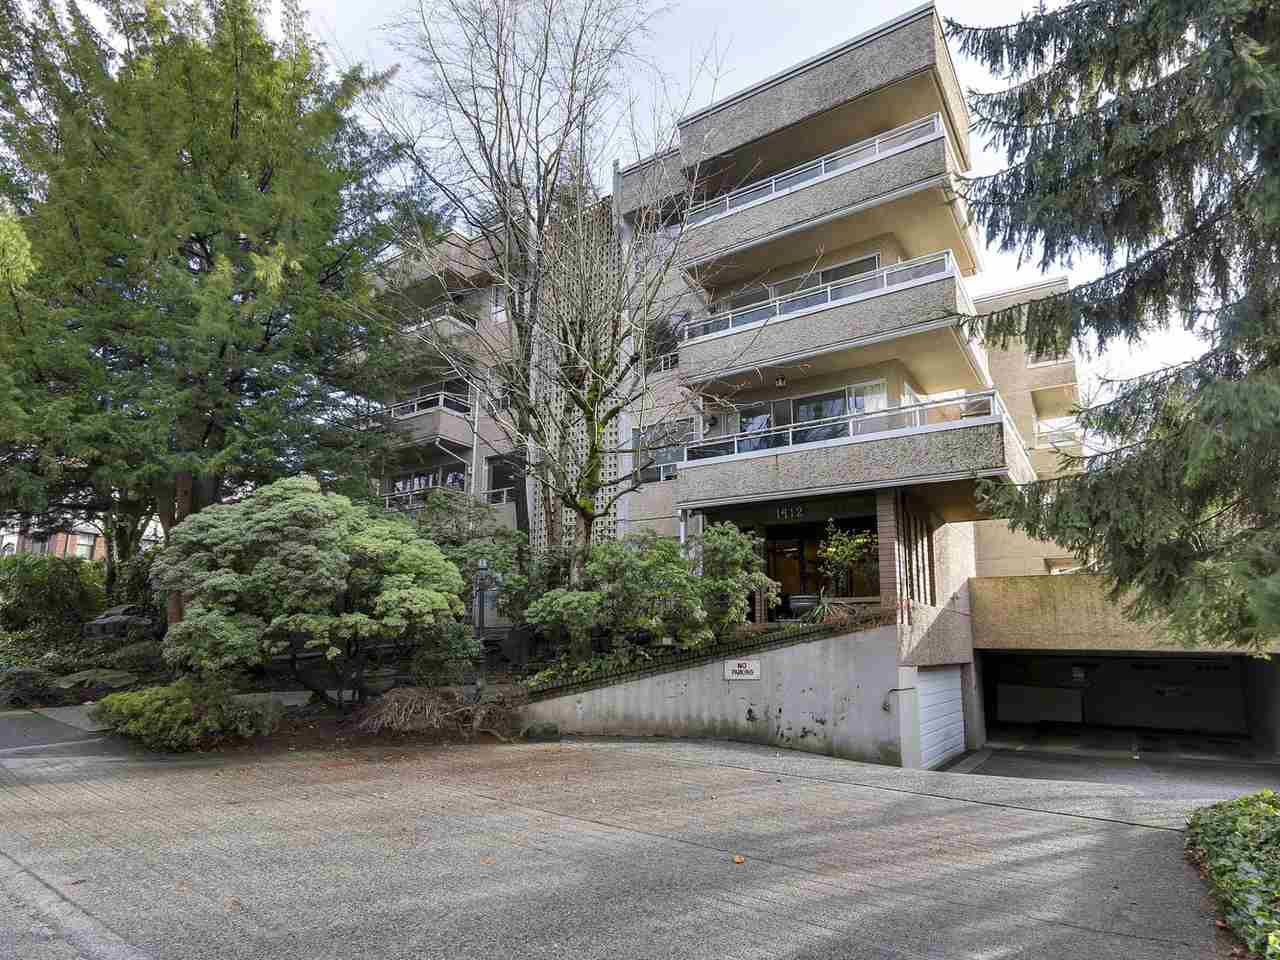 """Main Photo: 306 1412 W 14TH Avenue in Vancouver: Fairview VW Condo for sale in """"Landmark Sunset"""" (Vancouver West)  : MLS®# R2133238"""